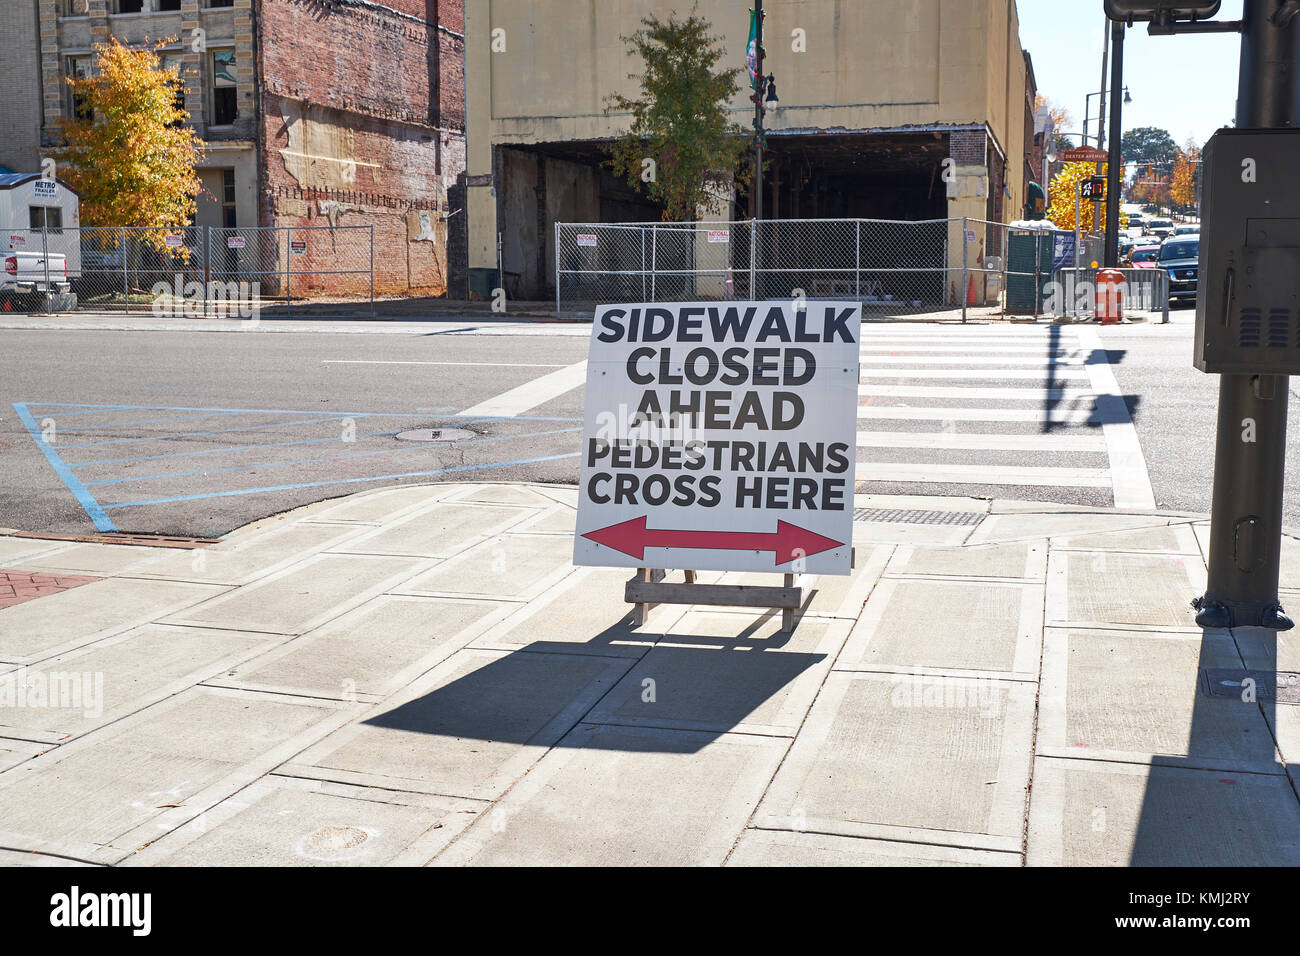 Closed sidewalk in the downtown urban redevelopment area in the city of Montgomery Alabama, USA. - Stock Image